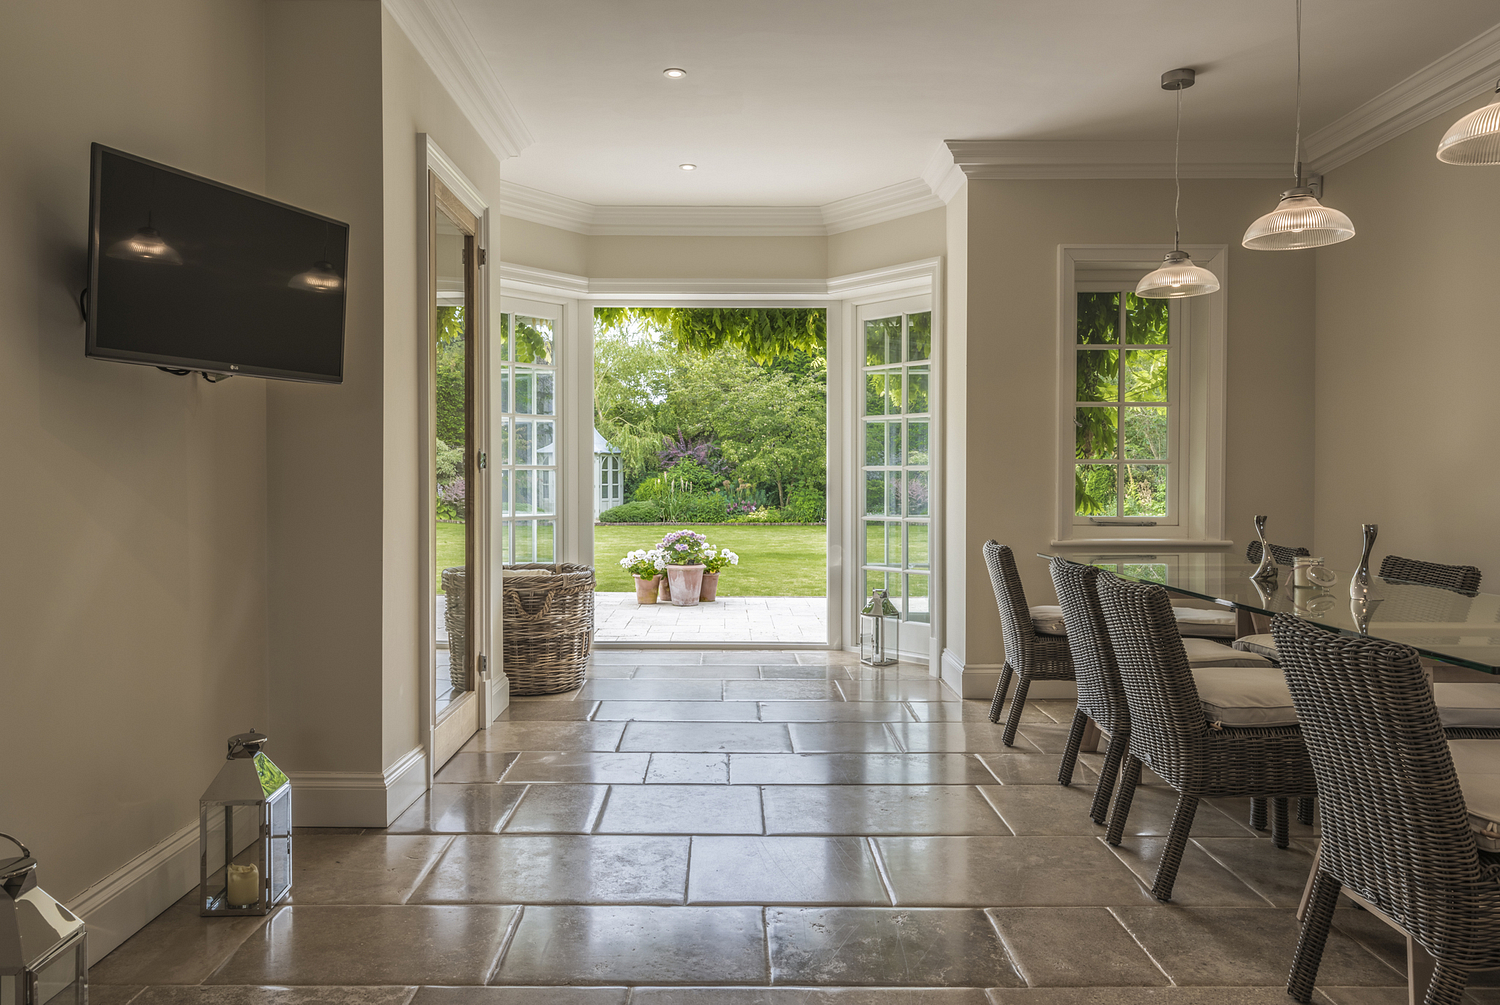 Dining room with stone floor, West Country house